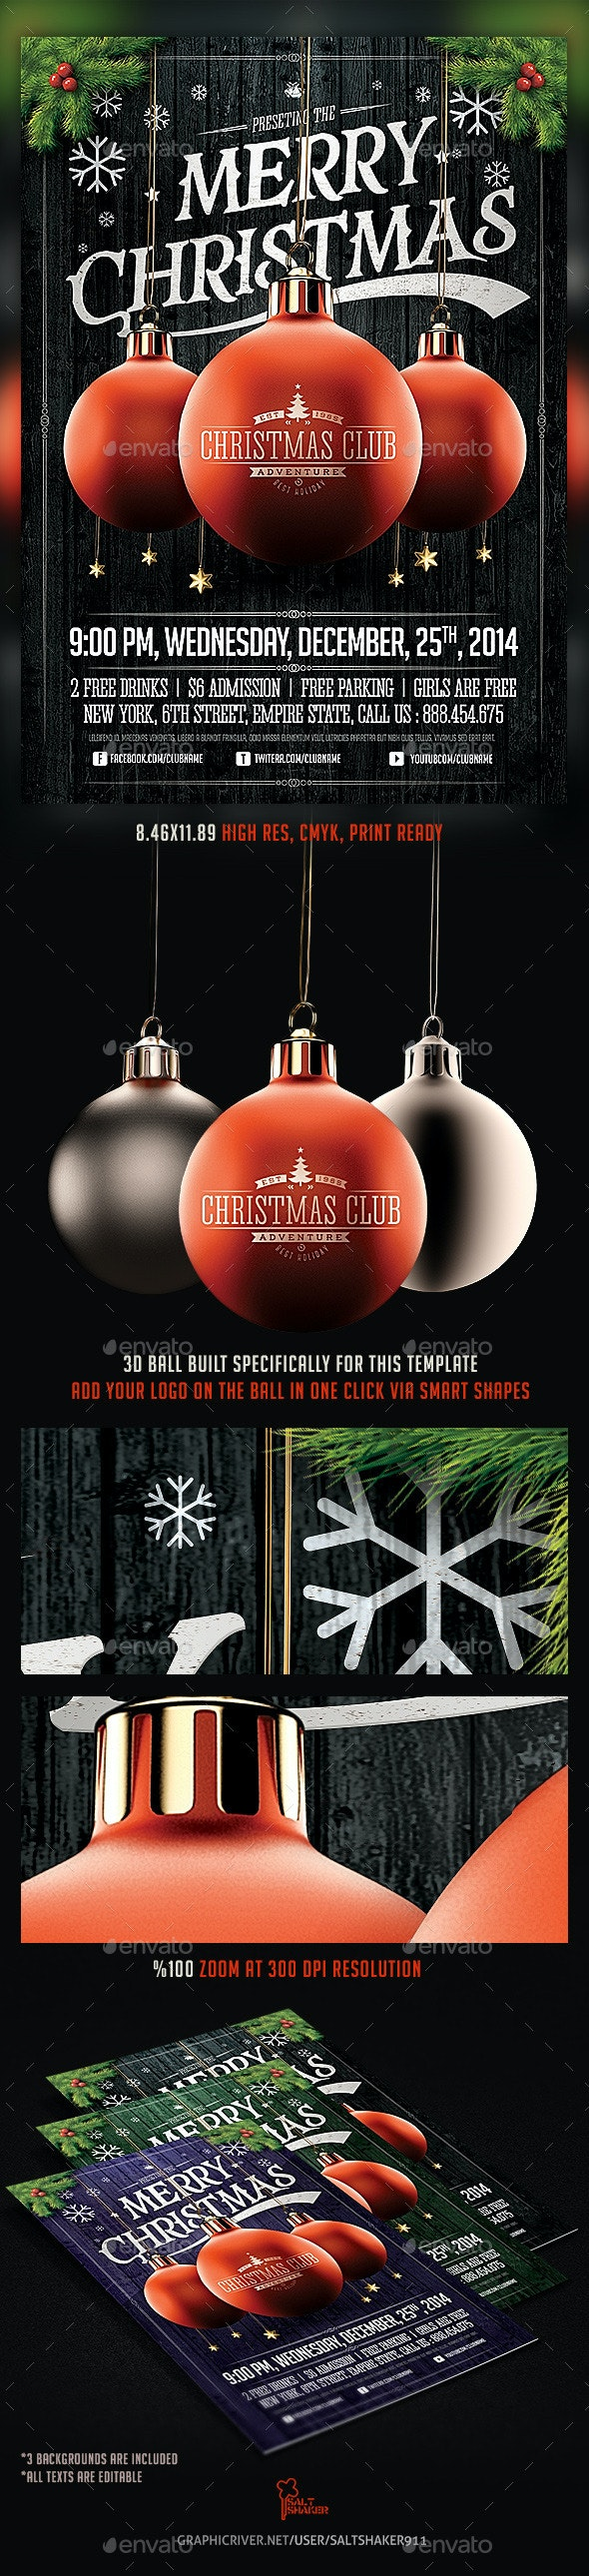 Christmas Party Flyer Template v.2 - Holidays Events